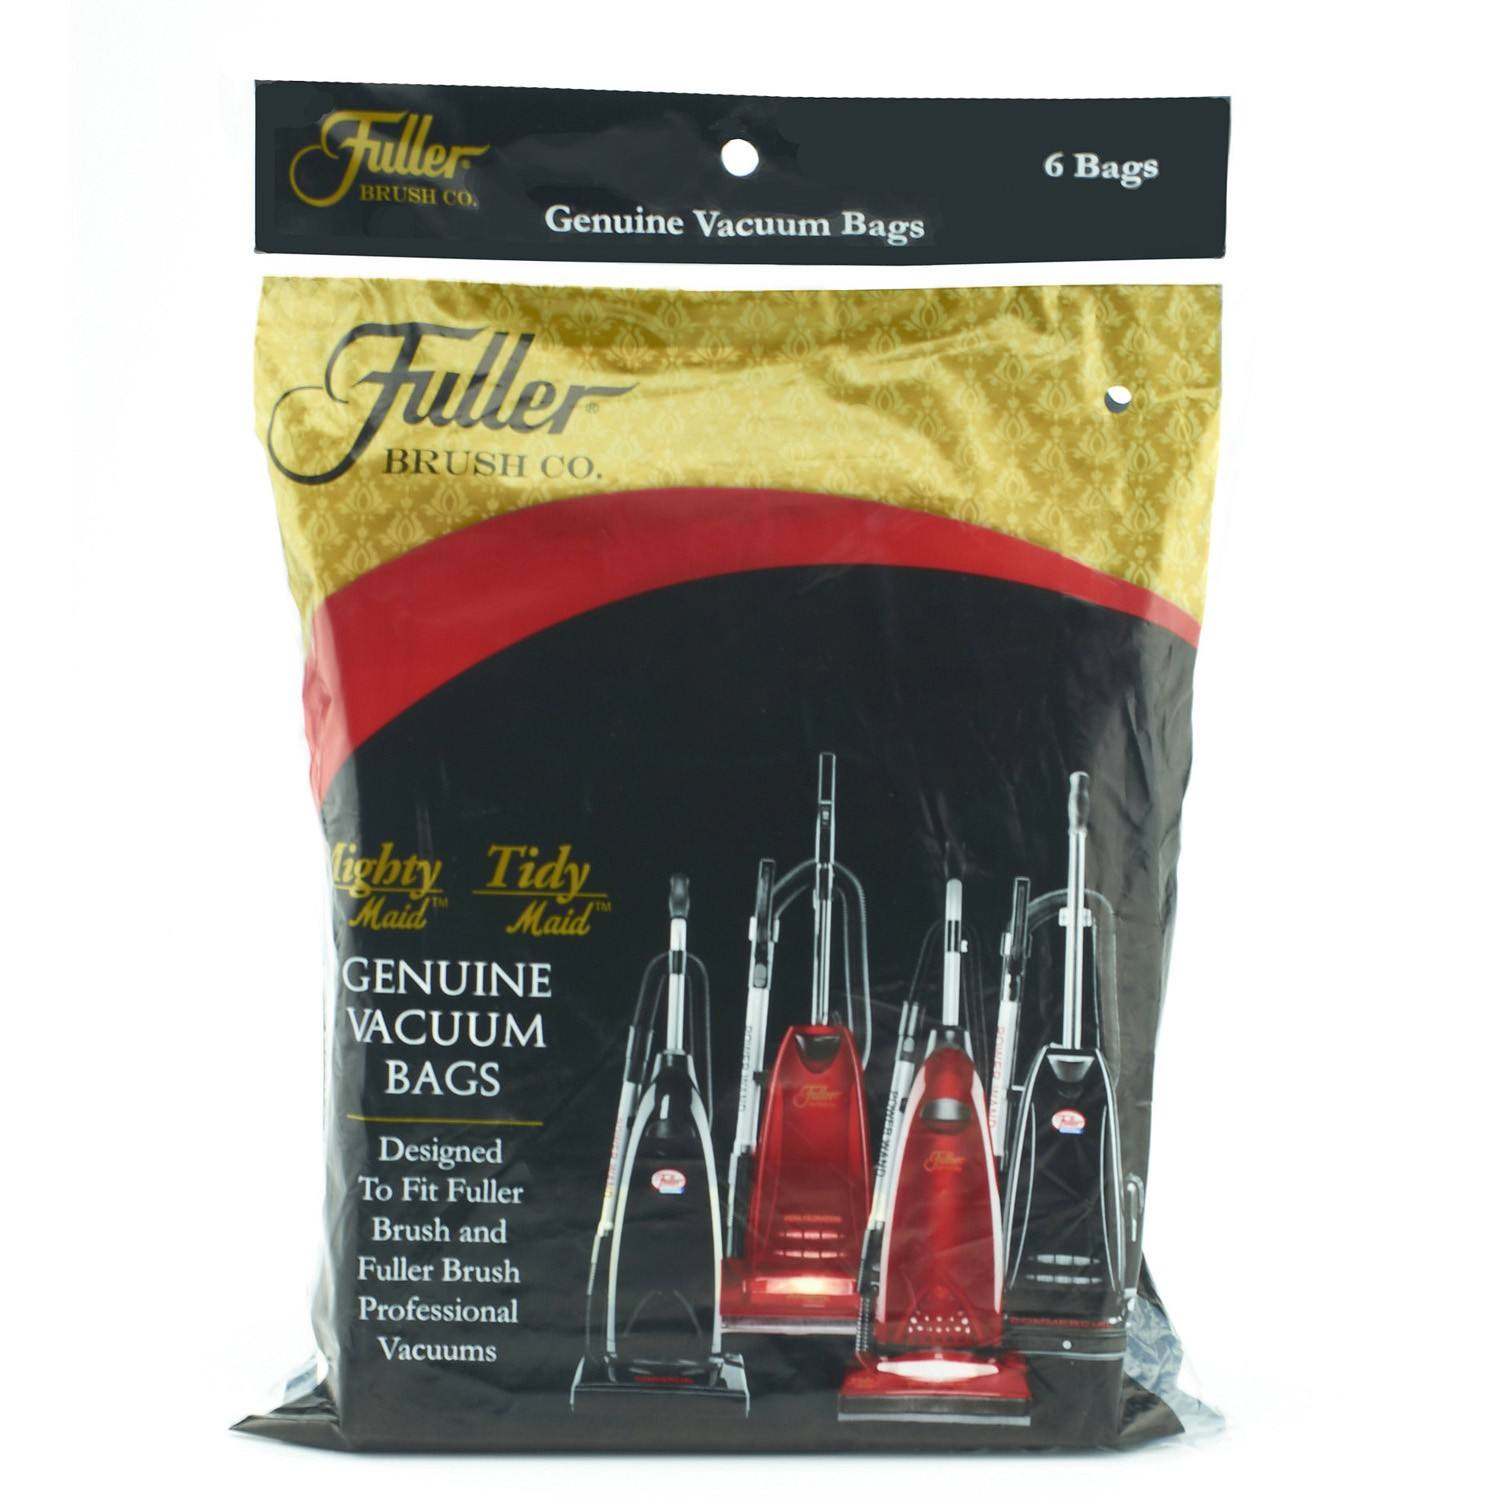 Fuller Brush Paper Vacuum bags for Uprights (6-Pack)